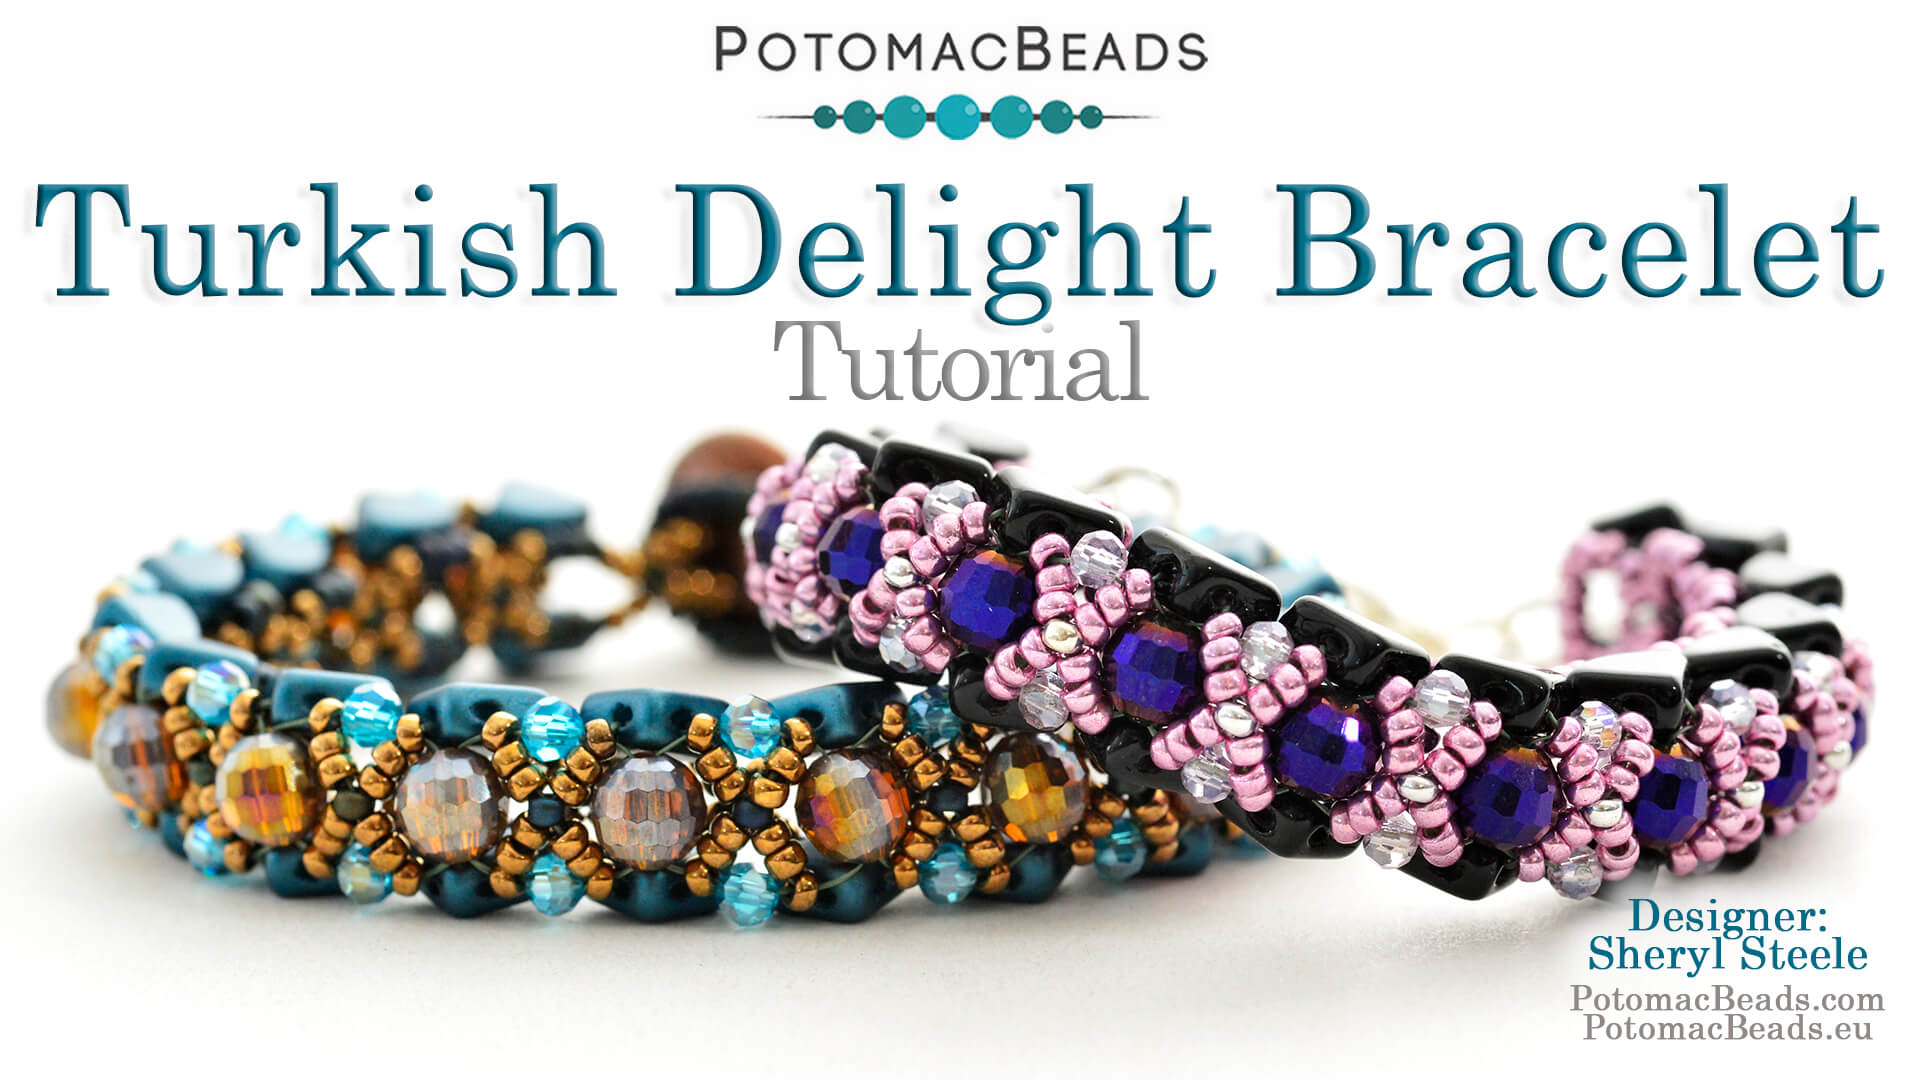 How to Bead Jewelry / Videos Sorted by Beads / QuadBow & PieDuo Bead Videos / Turkish Delight Bracelet Tutorial